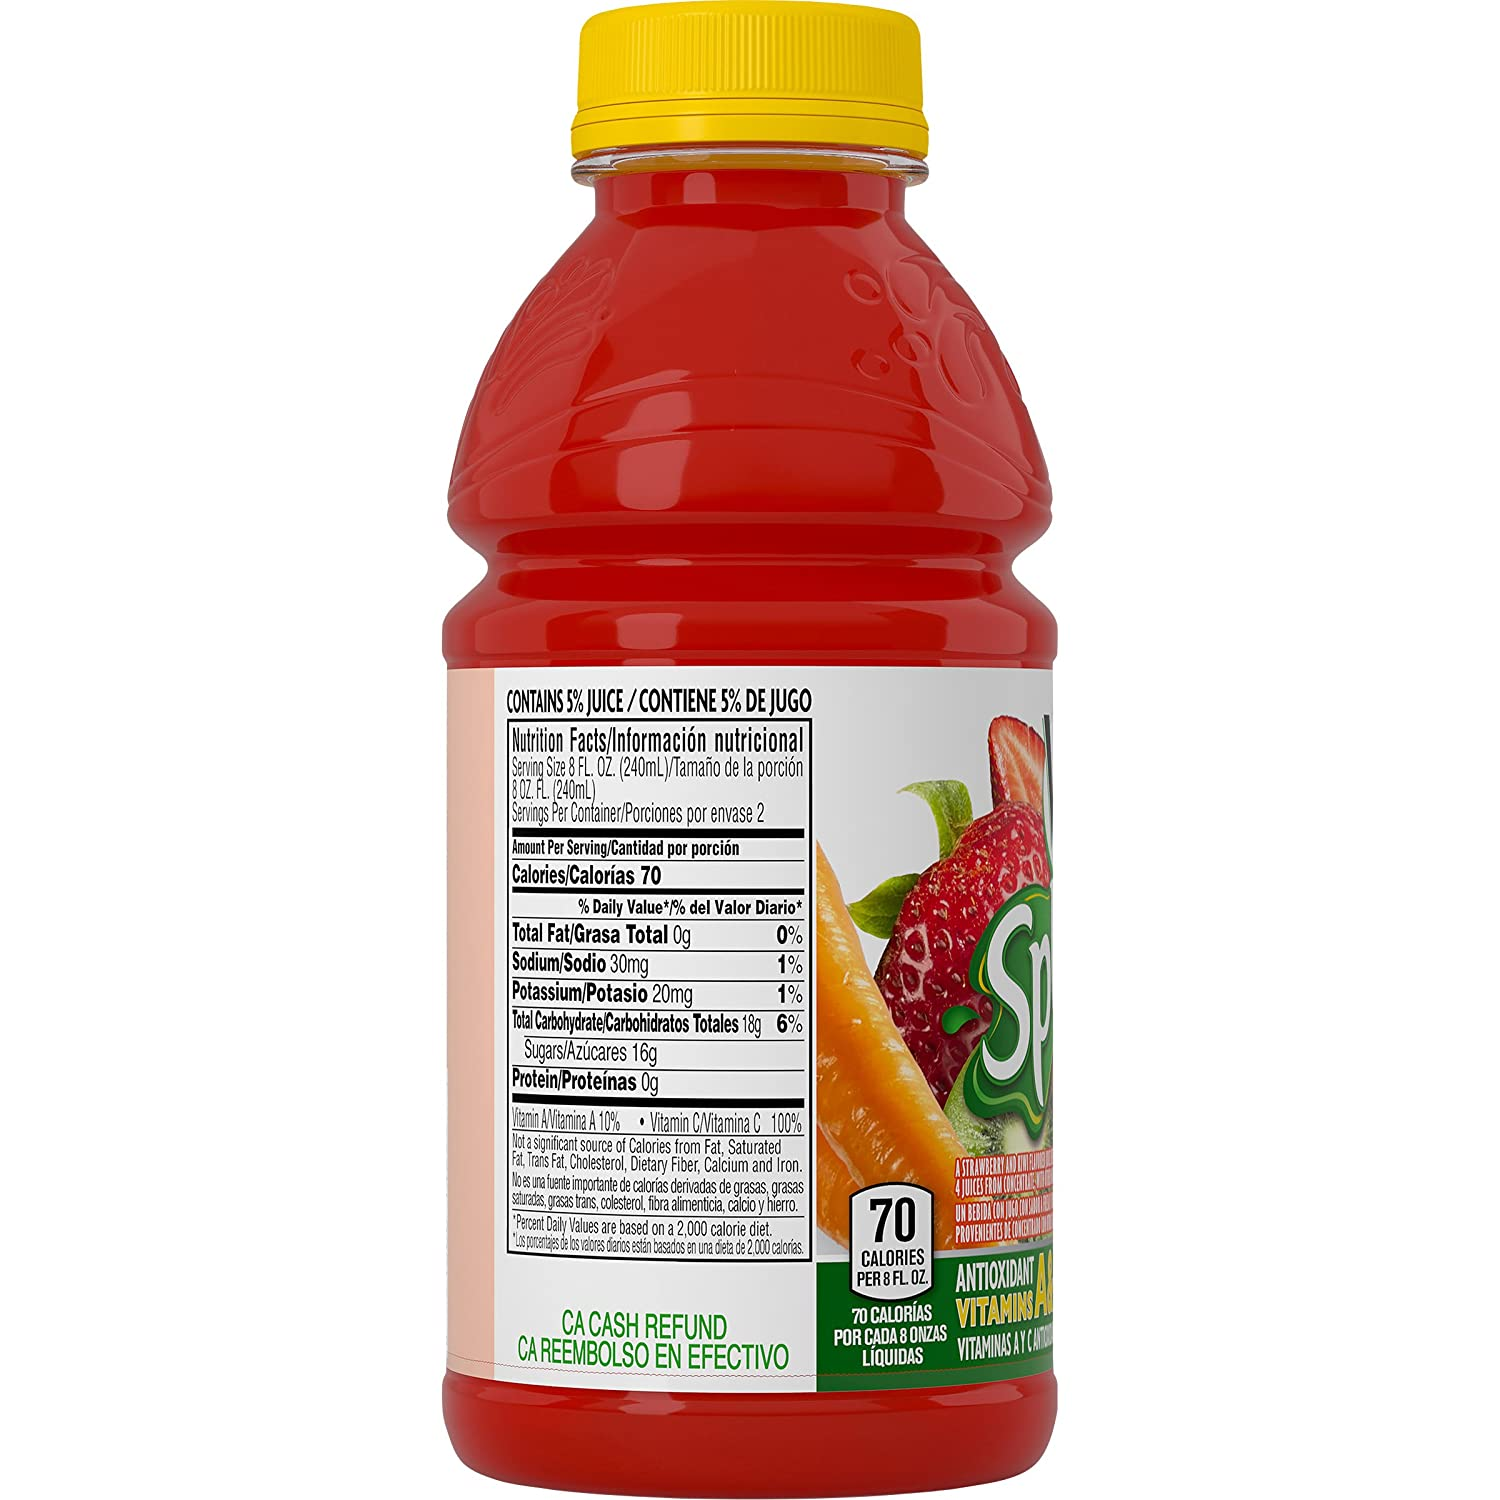 Amazon.com : V8 Splash, Strawberry Kiwi, 16 Ounce (Pack of 24) : Juice : Grocery & Gourmet Food